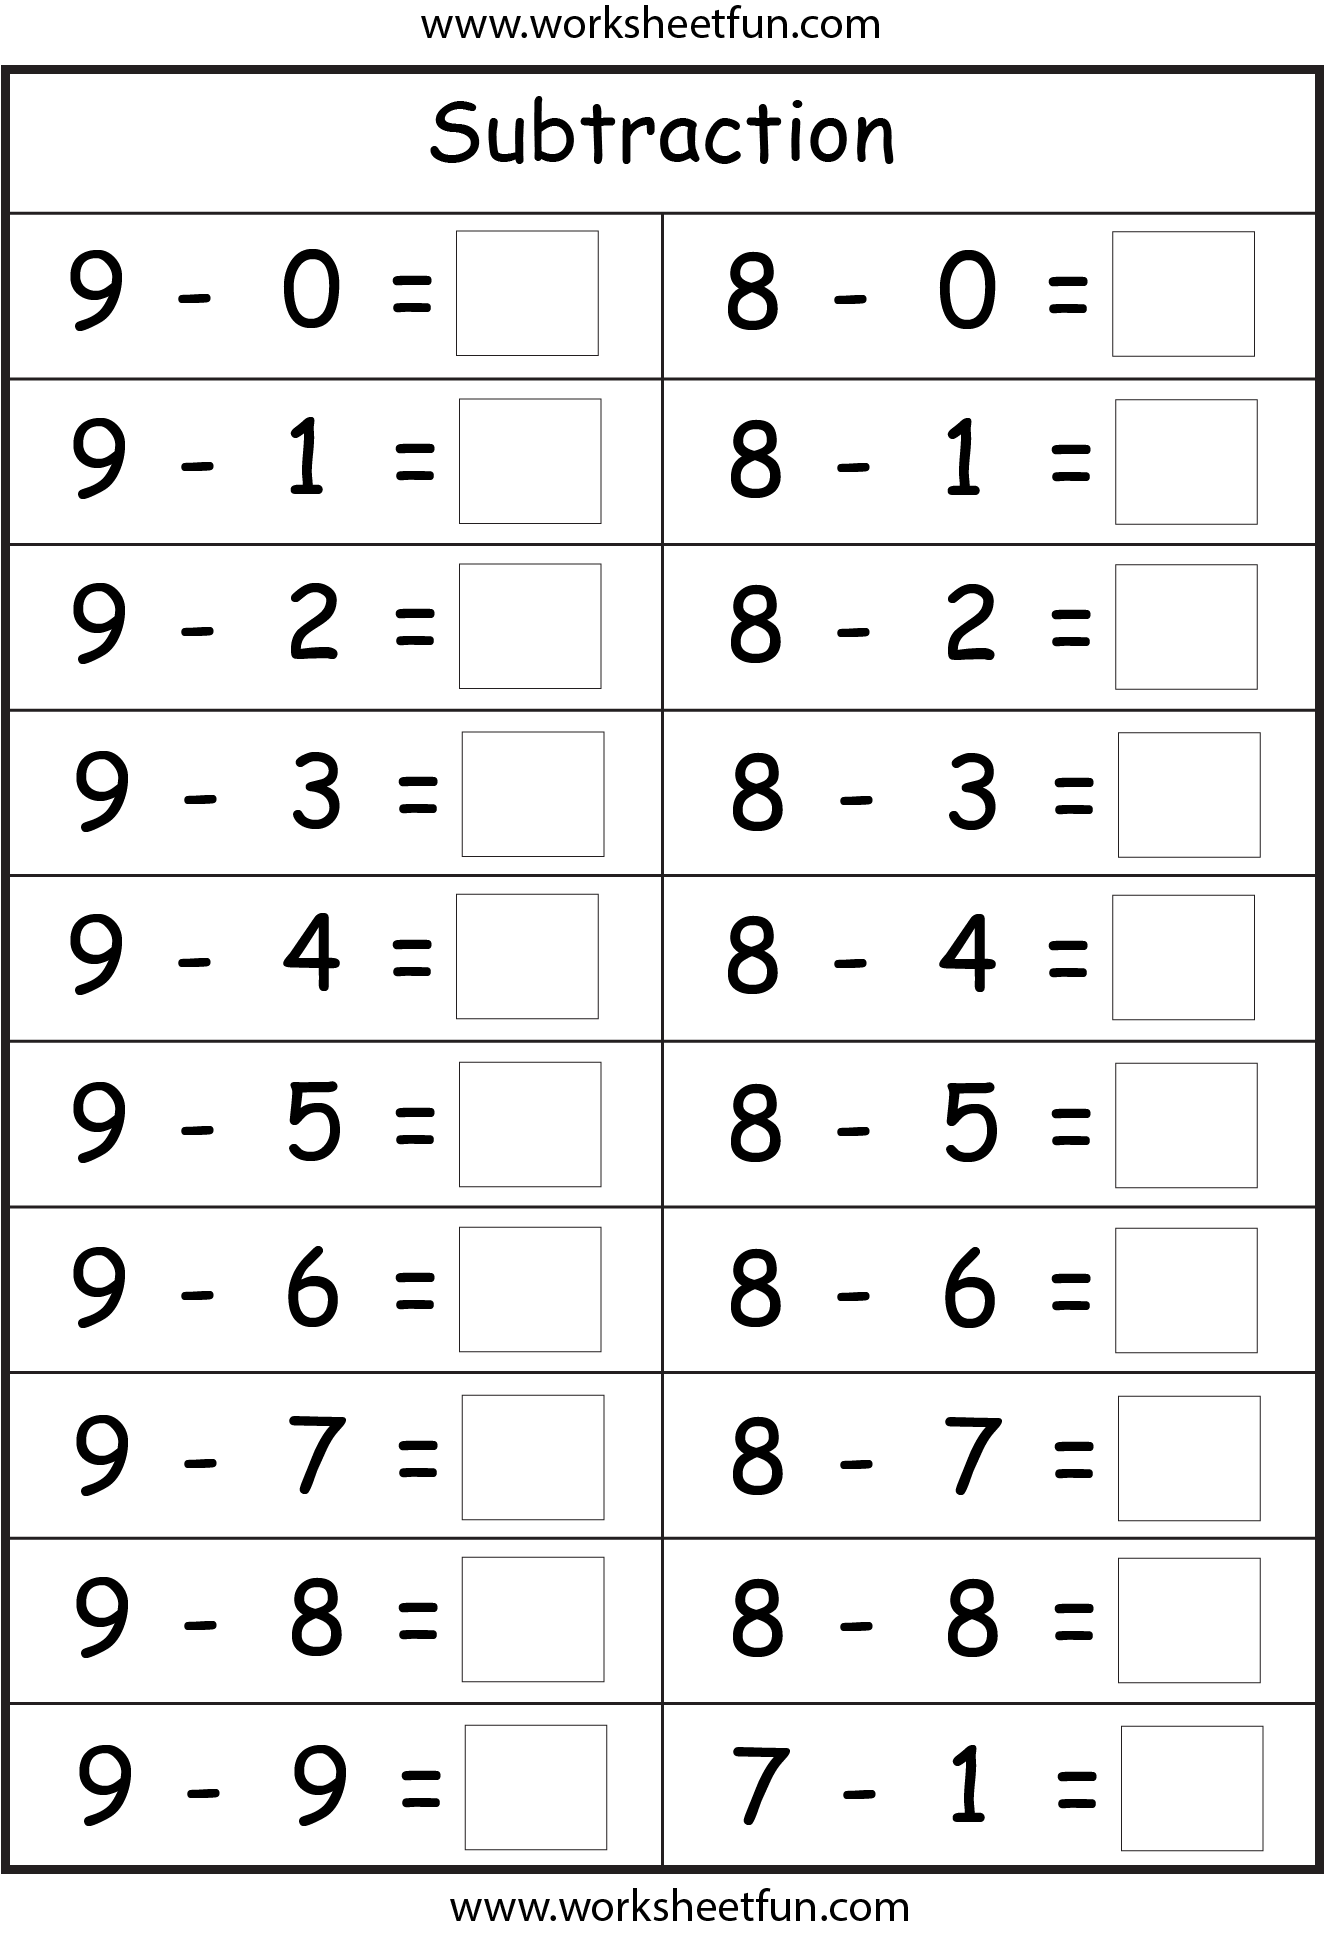 Subtraction 4 Worksheets